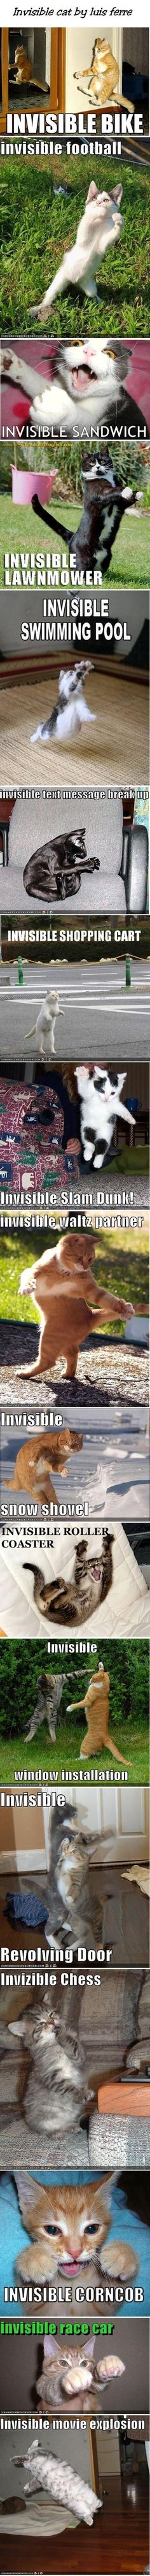 Invisible lol cat. Inivisible sandwich. Invisible snow shovel. Invisible explosion